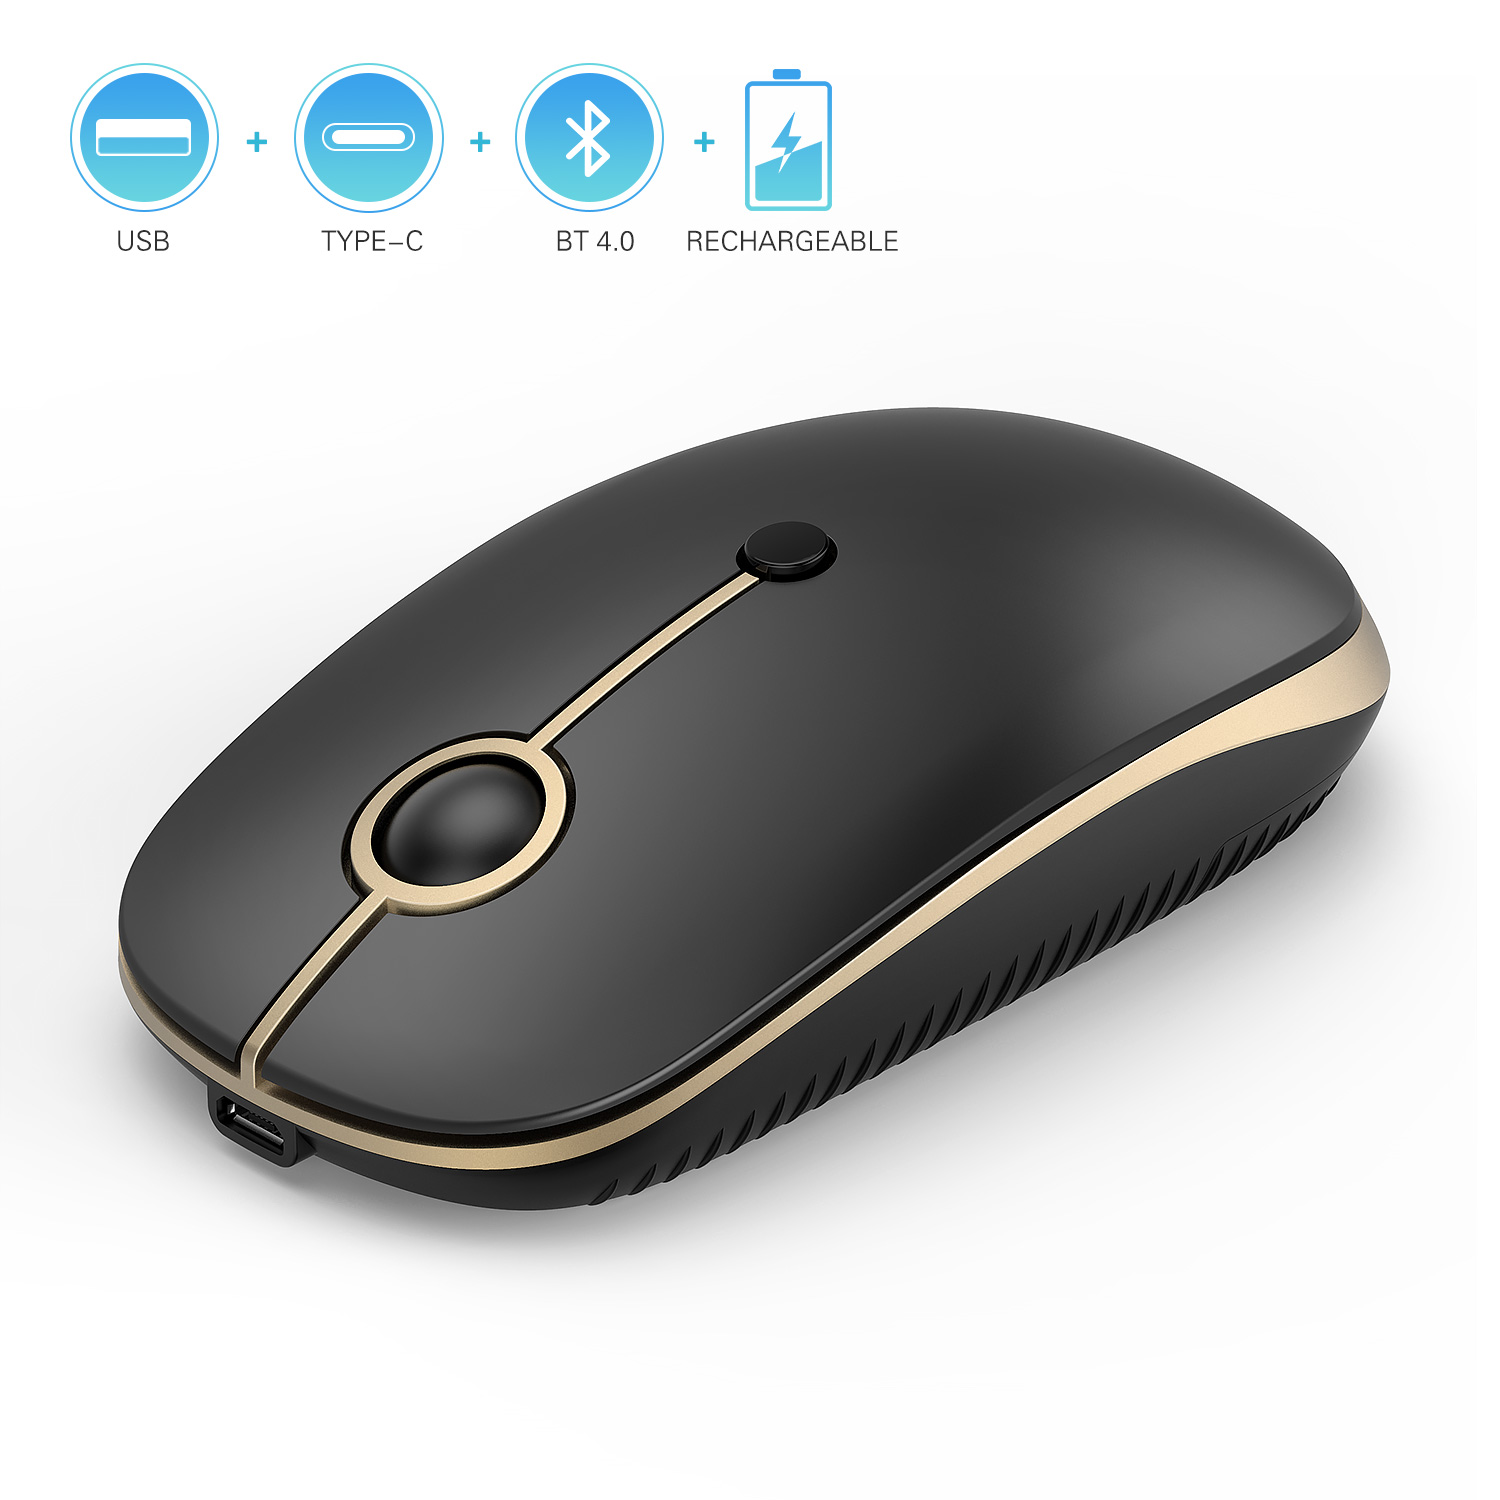 Rechargeable 2.4GHz Wireless Bluetooth Mouse, Jelly Comb Slim